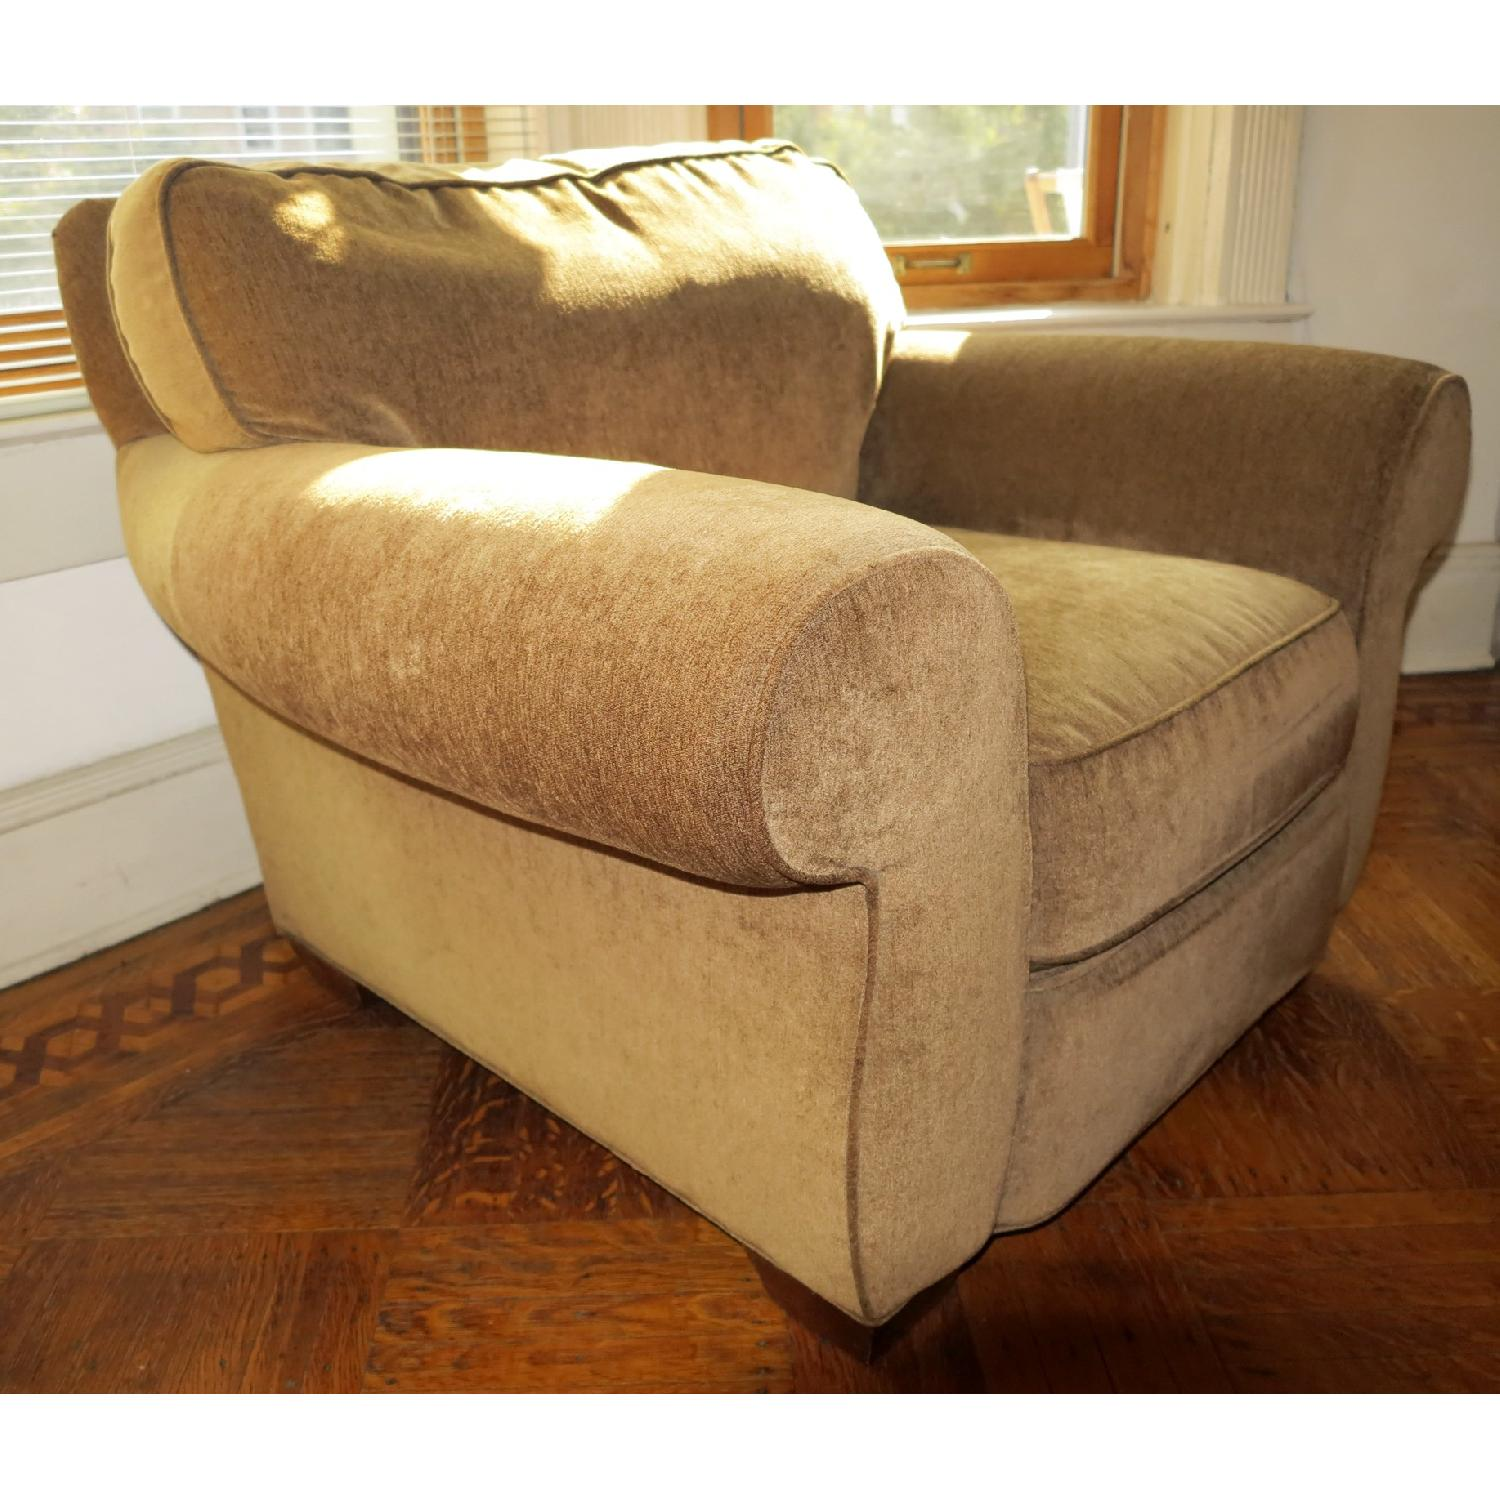 Lee Industries Handcrafted Armchair & Ottoman - image-5